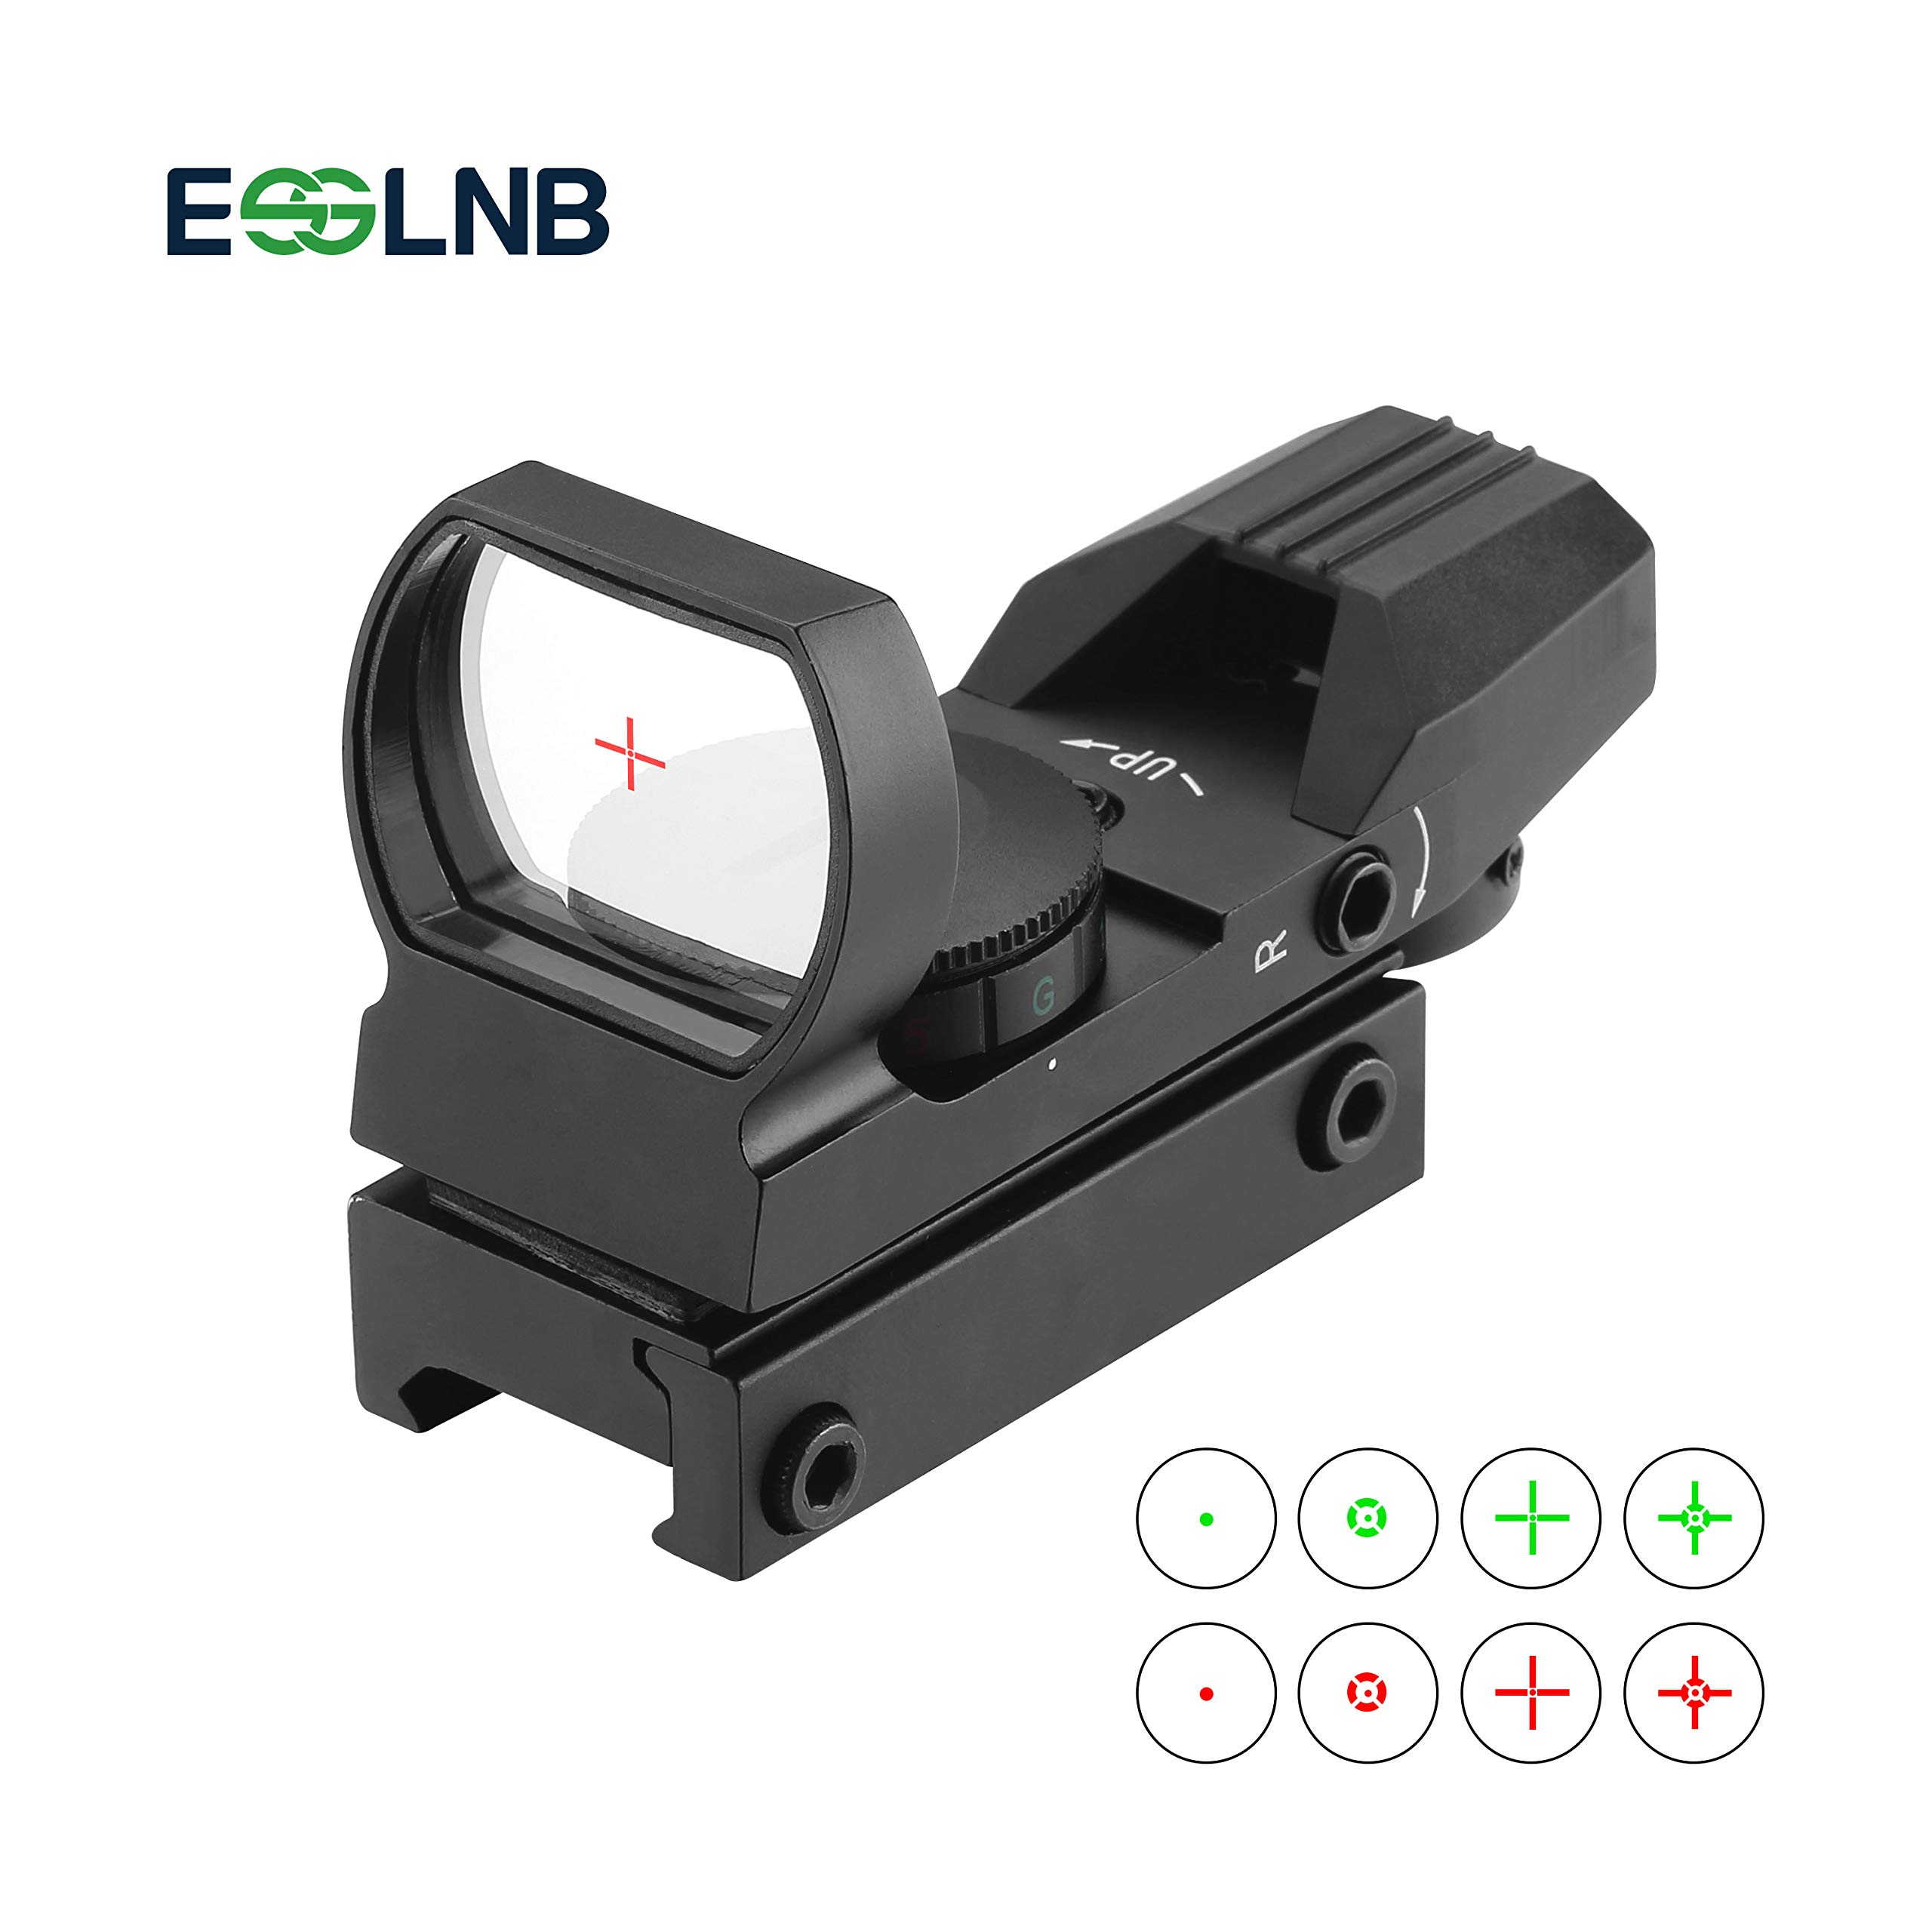 ESSLNB Red Dot Scope 4 Reticles Gun Sight Scope Reflex Sight for Airsoft Guns Pistol Shotgun with 20/22mm Weaver Picatinny Rail Mount (Black Sight Scope) by ESSLNB